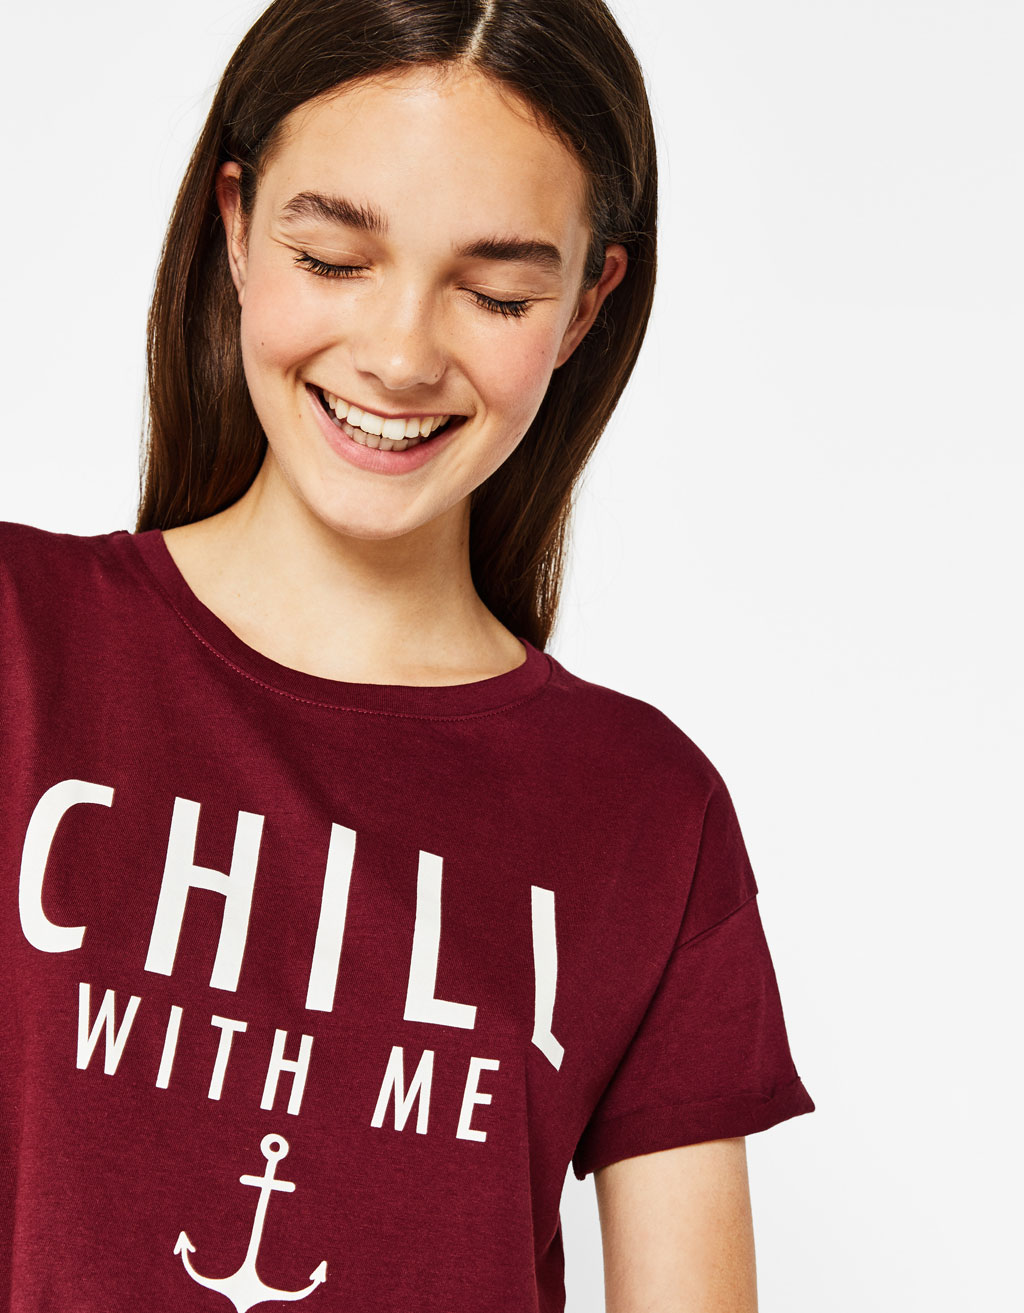 Cropped T-shirt with printed slogan